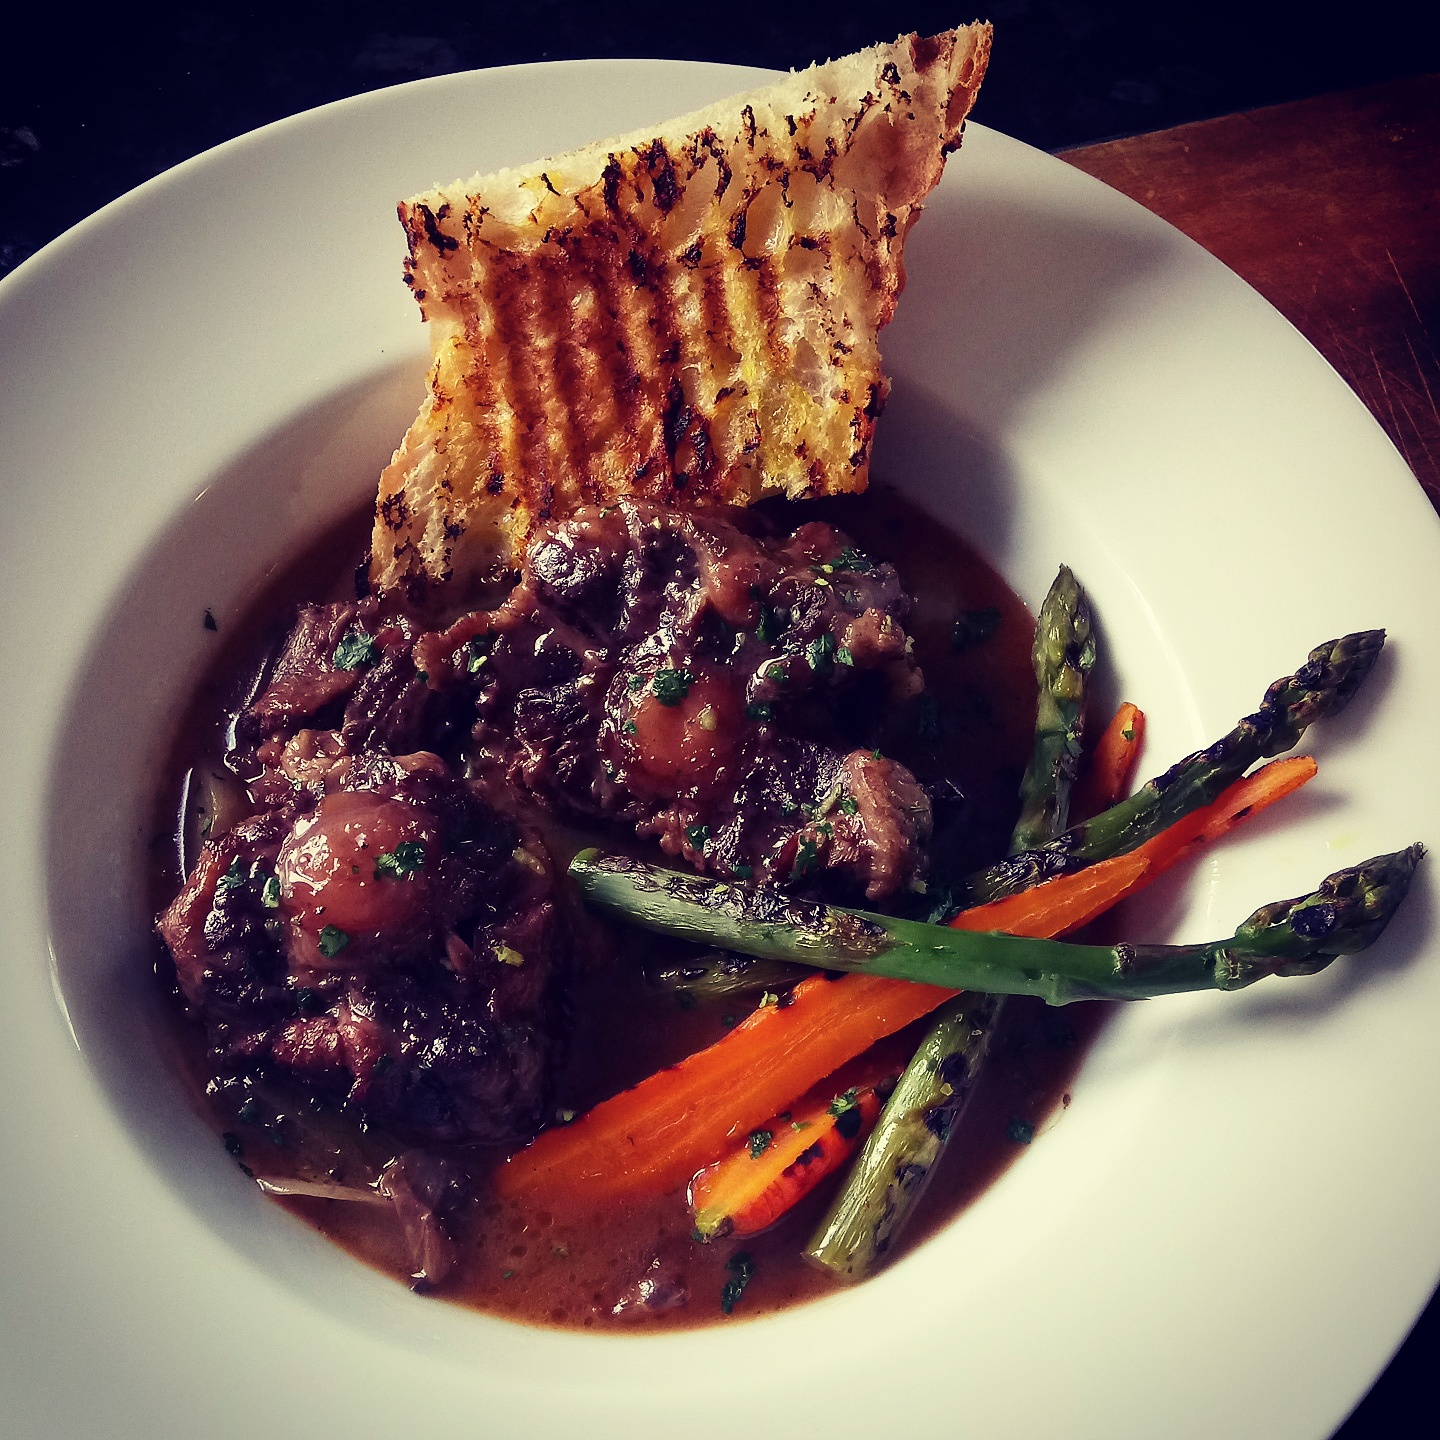 Oxtail Stew Is Very Much Associated With Winter Time Cooking For When It Is Cold And Grey Outside And You Need Something Calorific And Rich